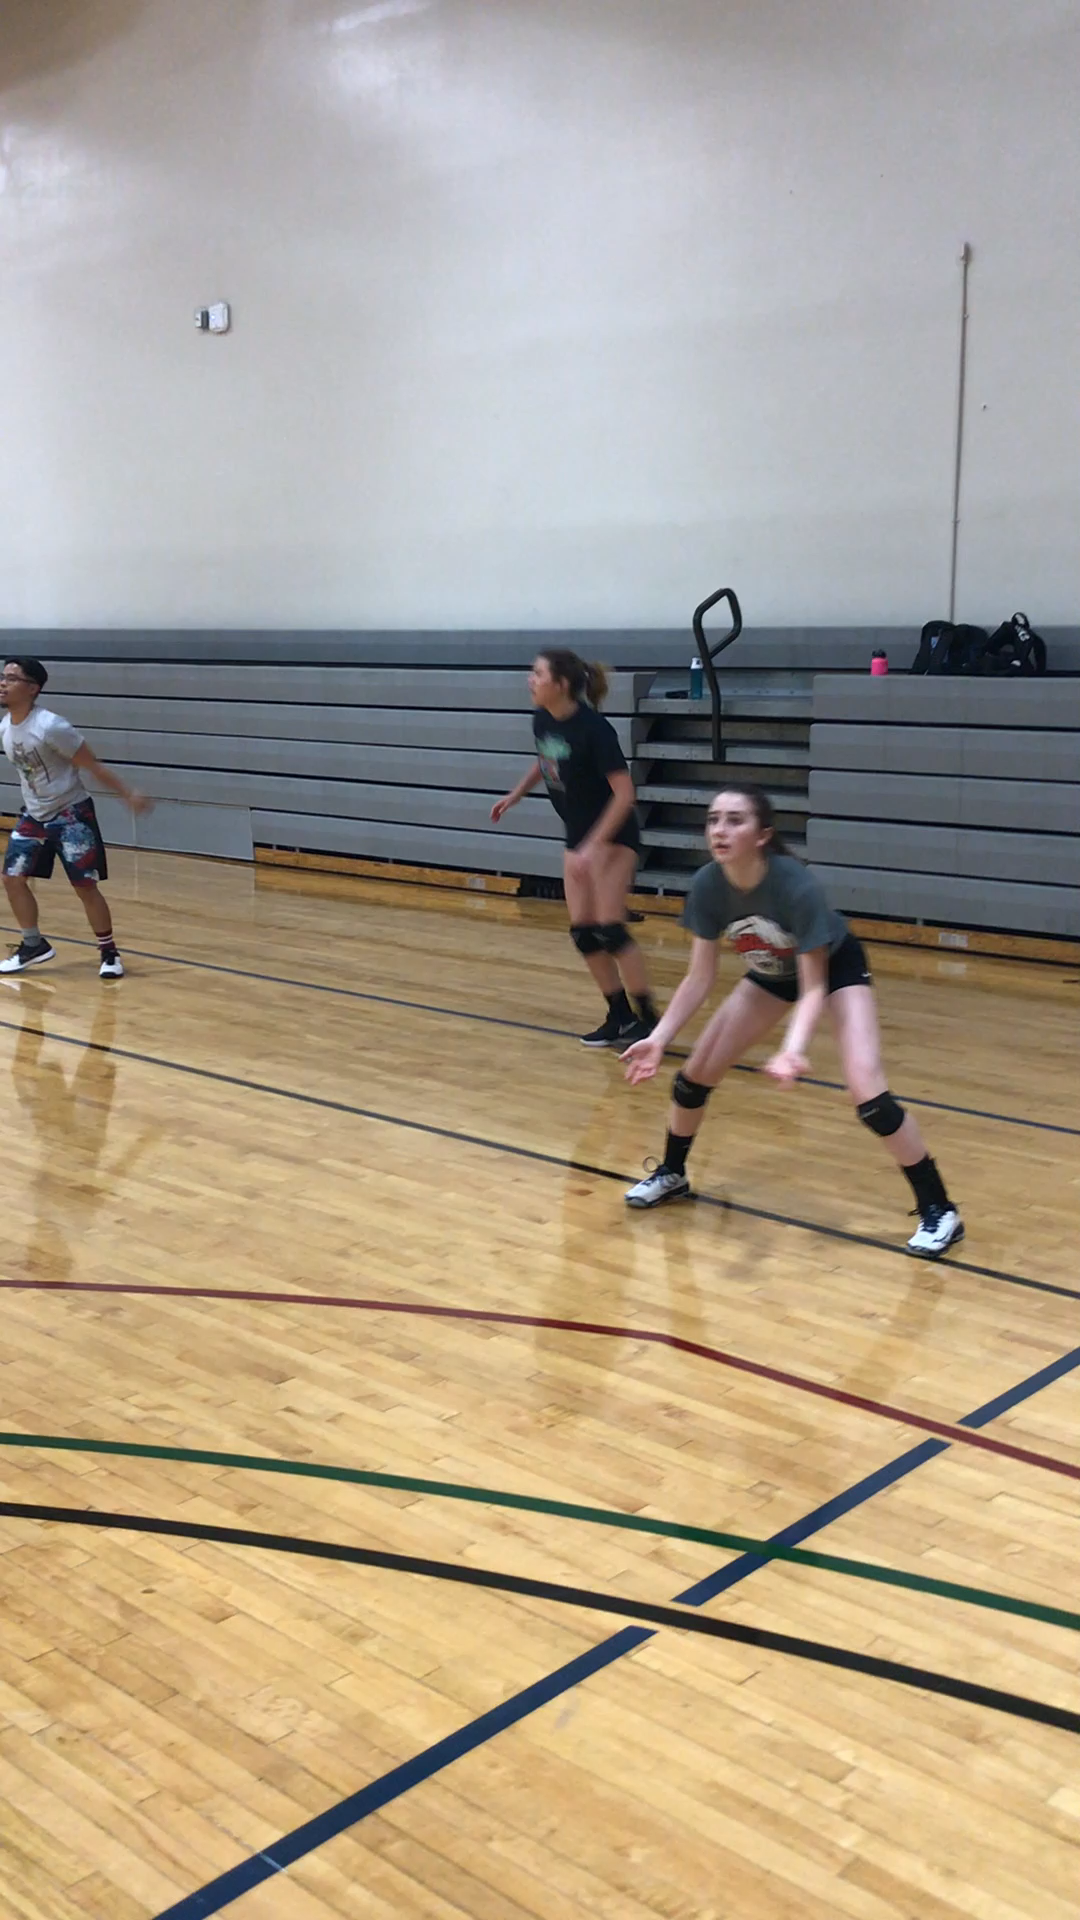 Best Volleyball Matches Volleyball Ball Control Drills Communication Volleyball Skills Click The Link In 2020 Volleyball Skills Volleyball Tips Volleyball Drills